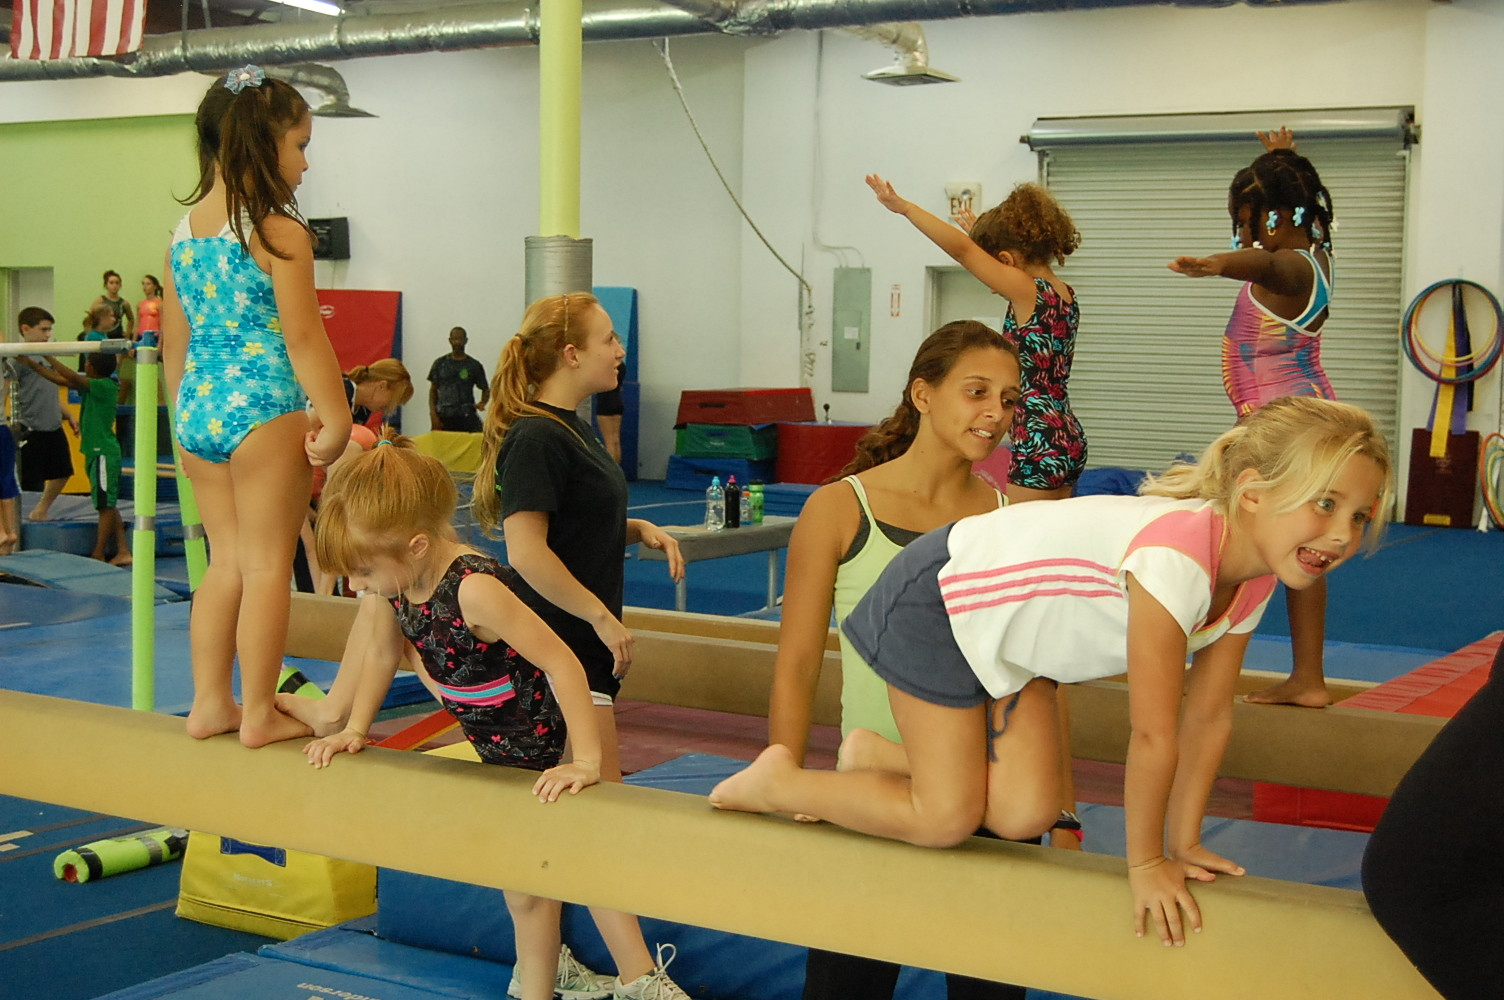 Gymnastics instruction and tumbling classes, for kids 18 months old and older, is available all year long at TNT Gymnastics & Fitness Complex on St. Johns Bluff Road South, on Jacksonville's Southside.